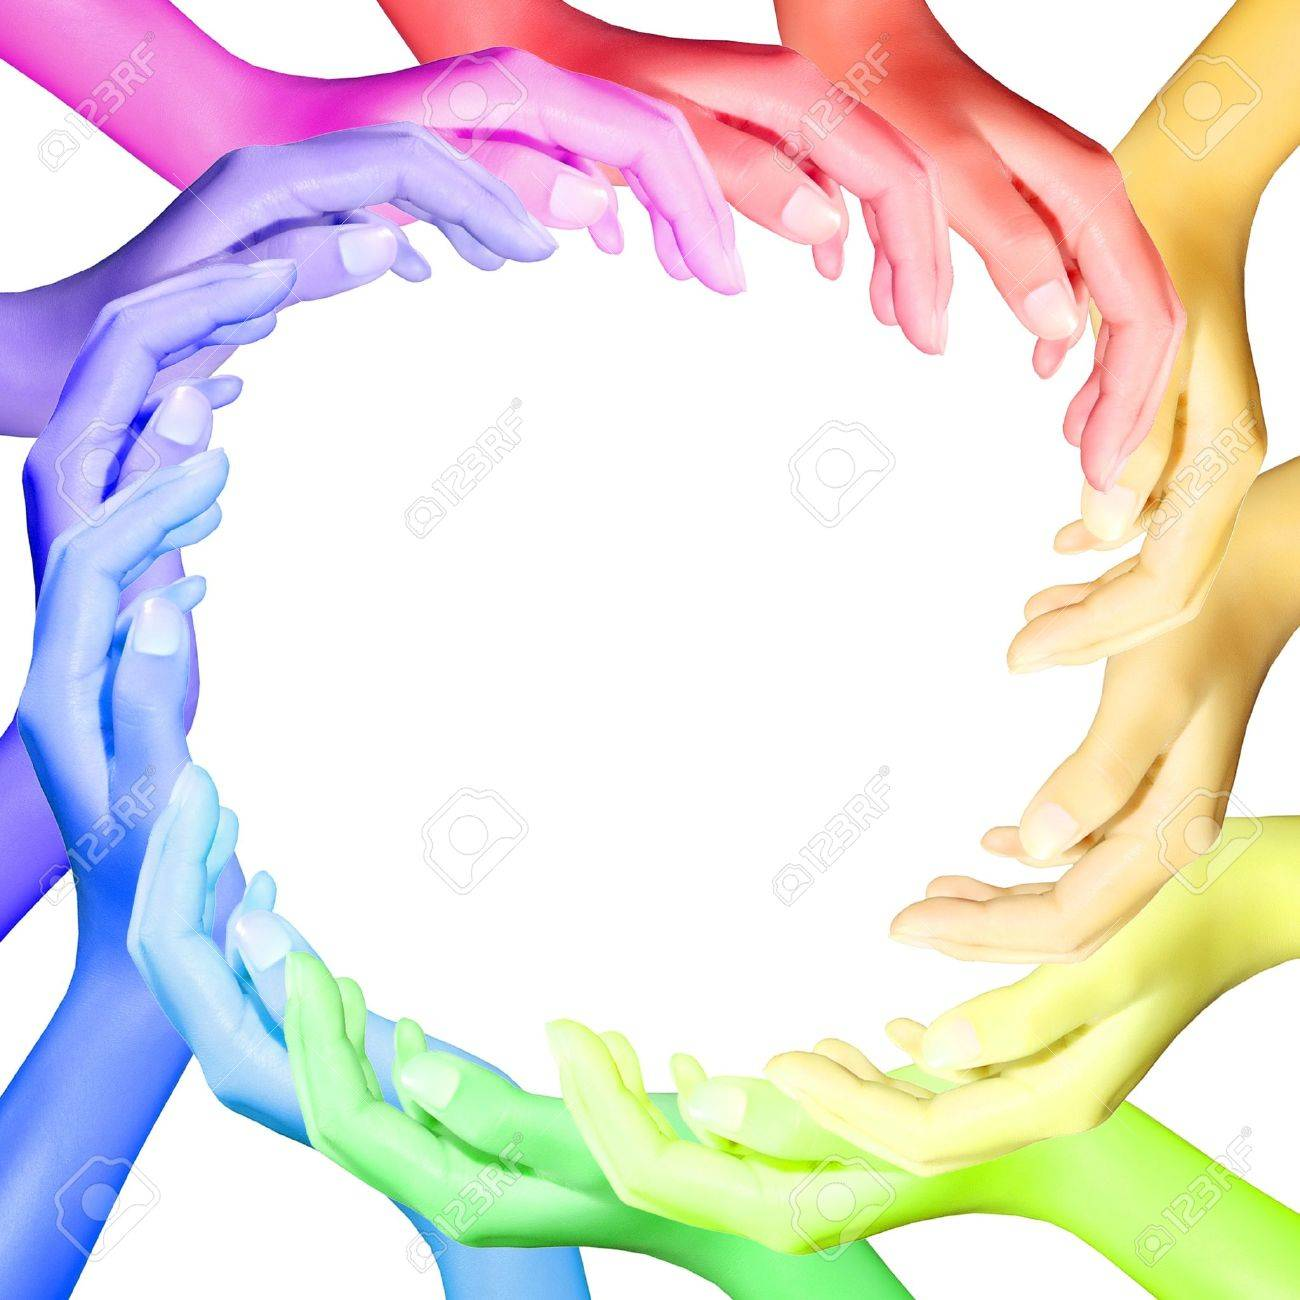 hands color making a circle Stock Photo - 10894779